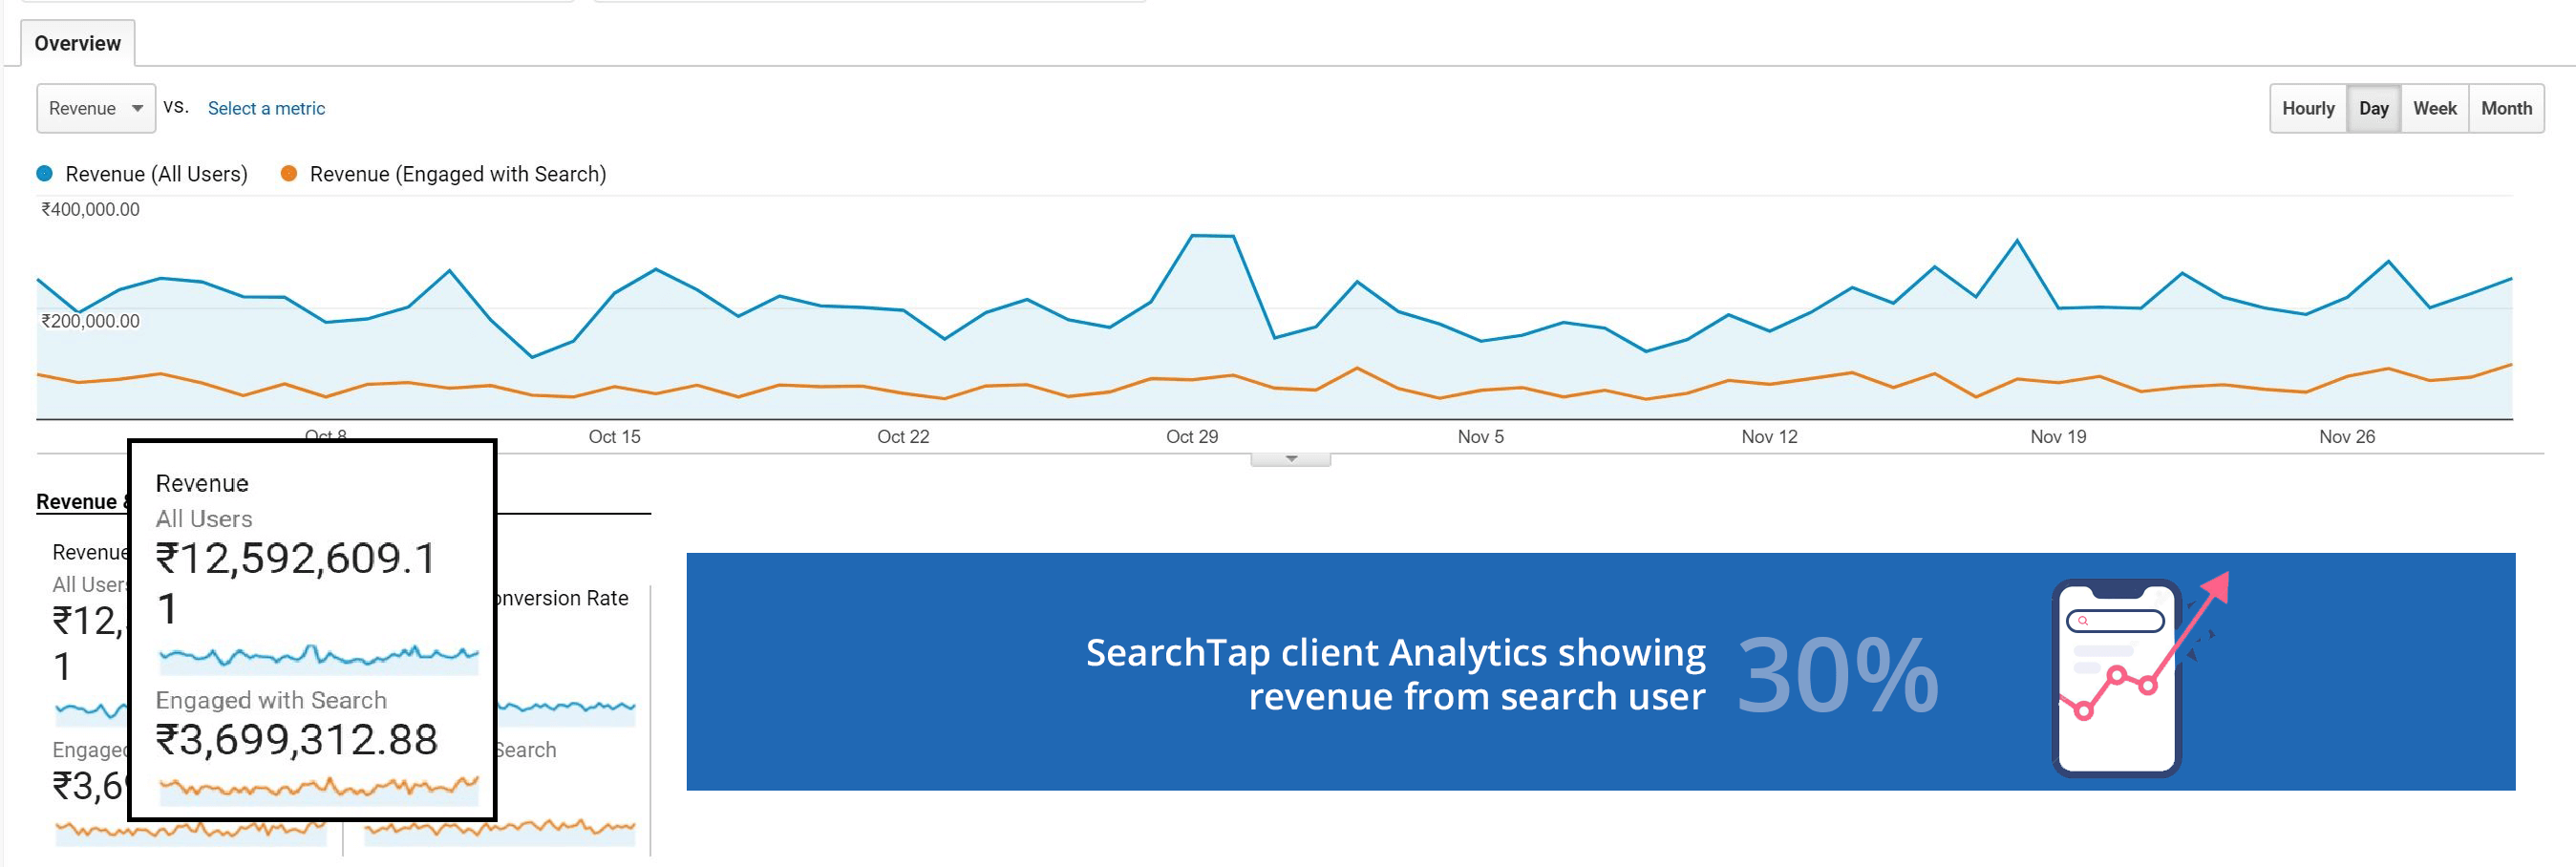 SearchTap Clients Analytics